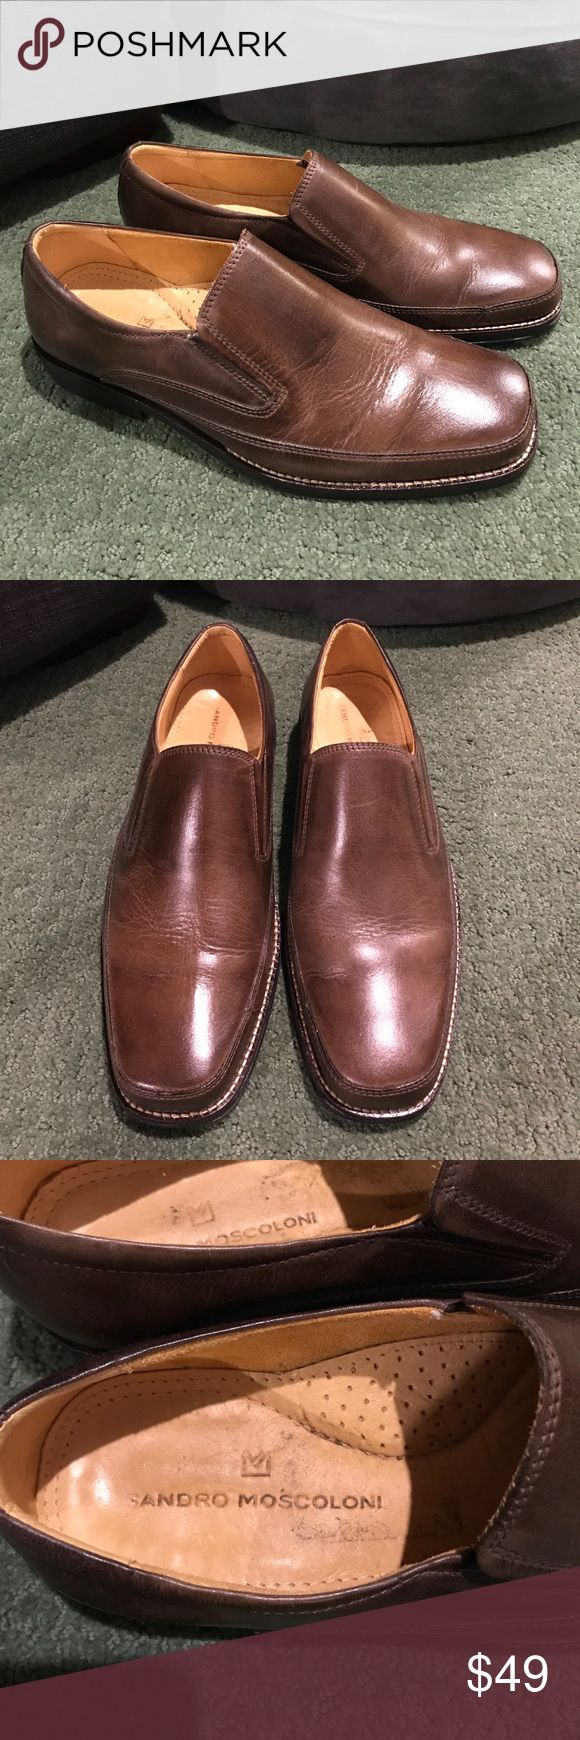 Sandro Moscoloni Leather Men's Lindsey Loafer Sandro Moscoloni Men's Leather shoes made in Brazil. Quality brown leather bought at Nordstrom. Size 10. Offering half or more than half of listing price is rude. Sandro Moscoloni Shoes Loafers & Slip-Ons